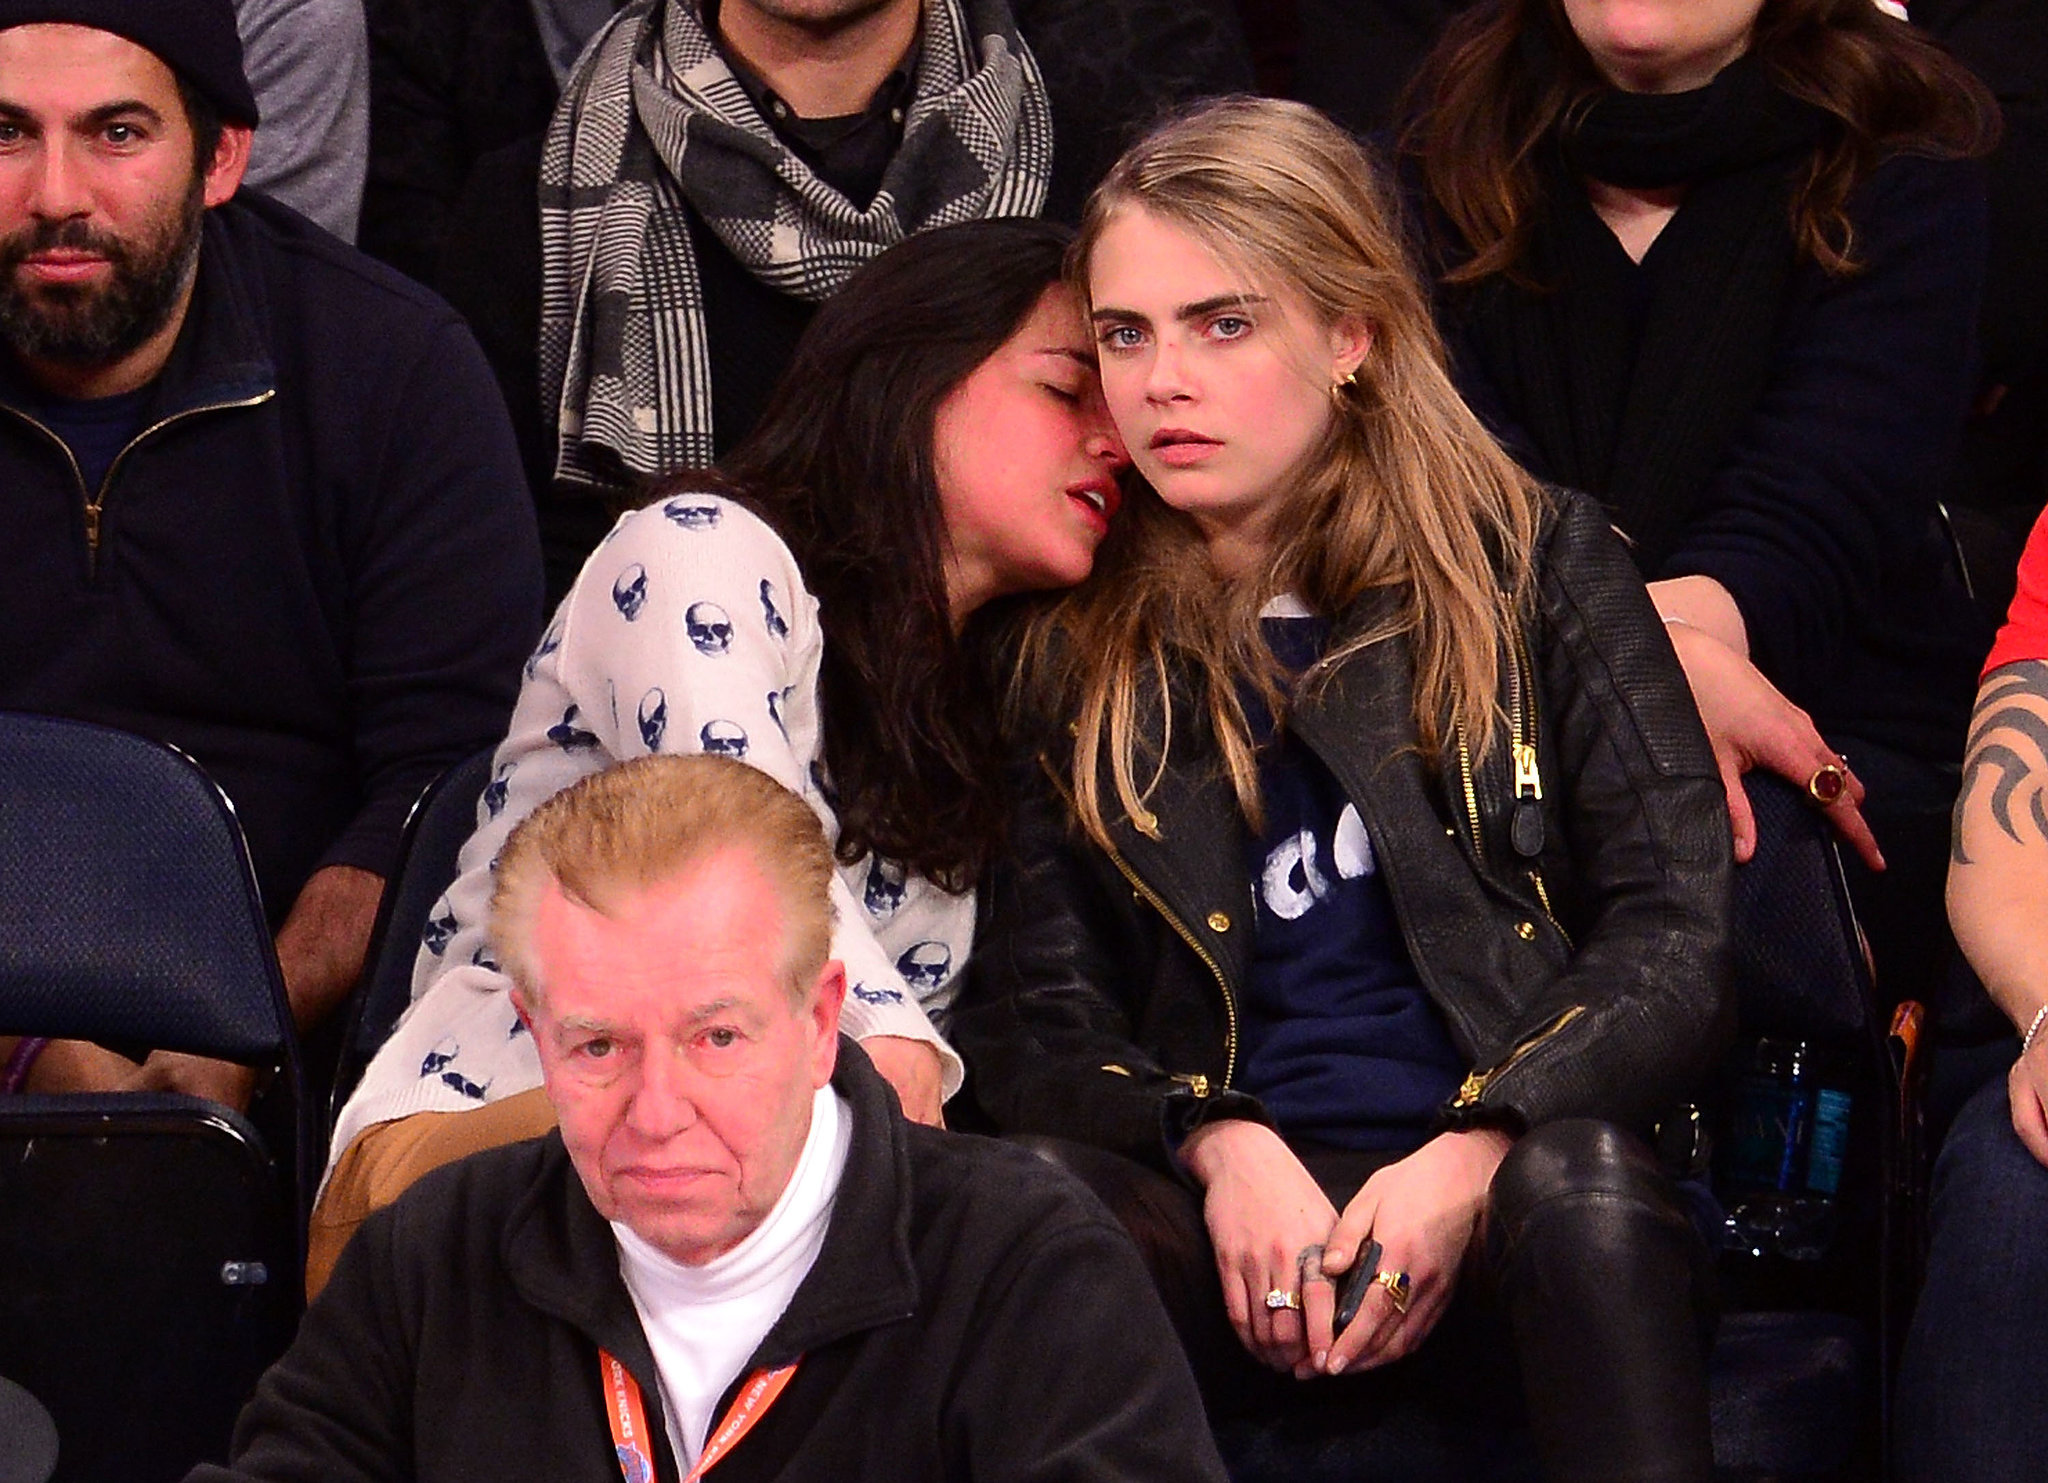 Michelle Rodriguez snuggled with Cara Delevingne at a Knicks game in NYC.